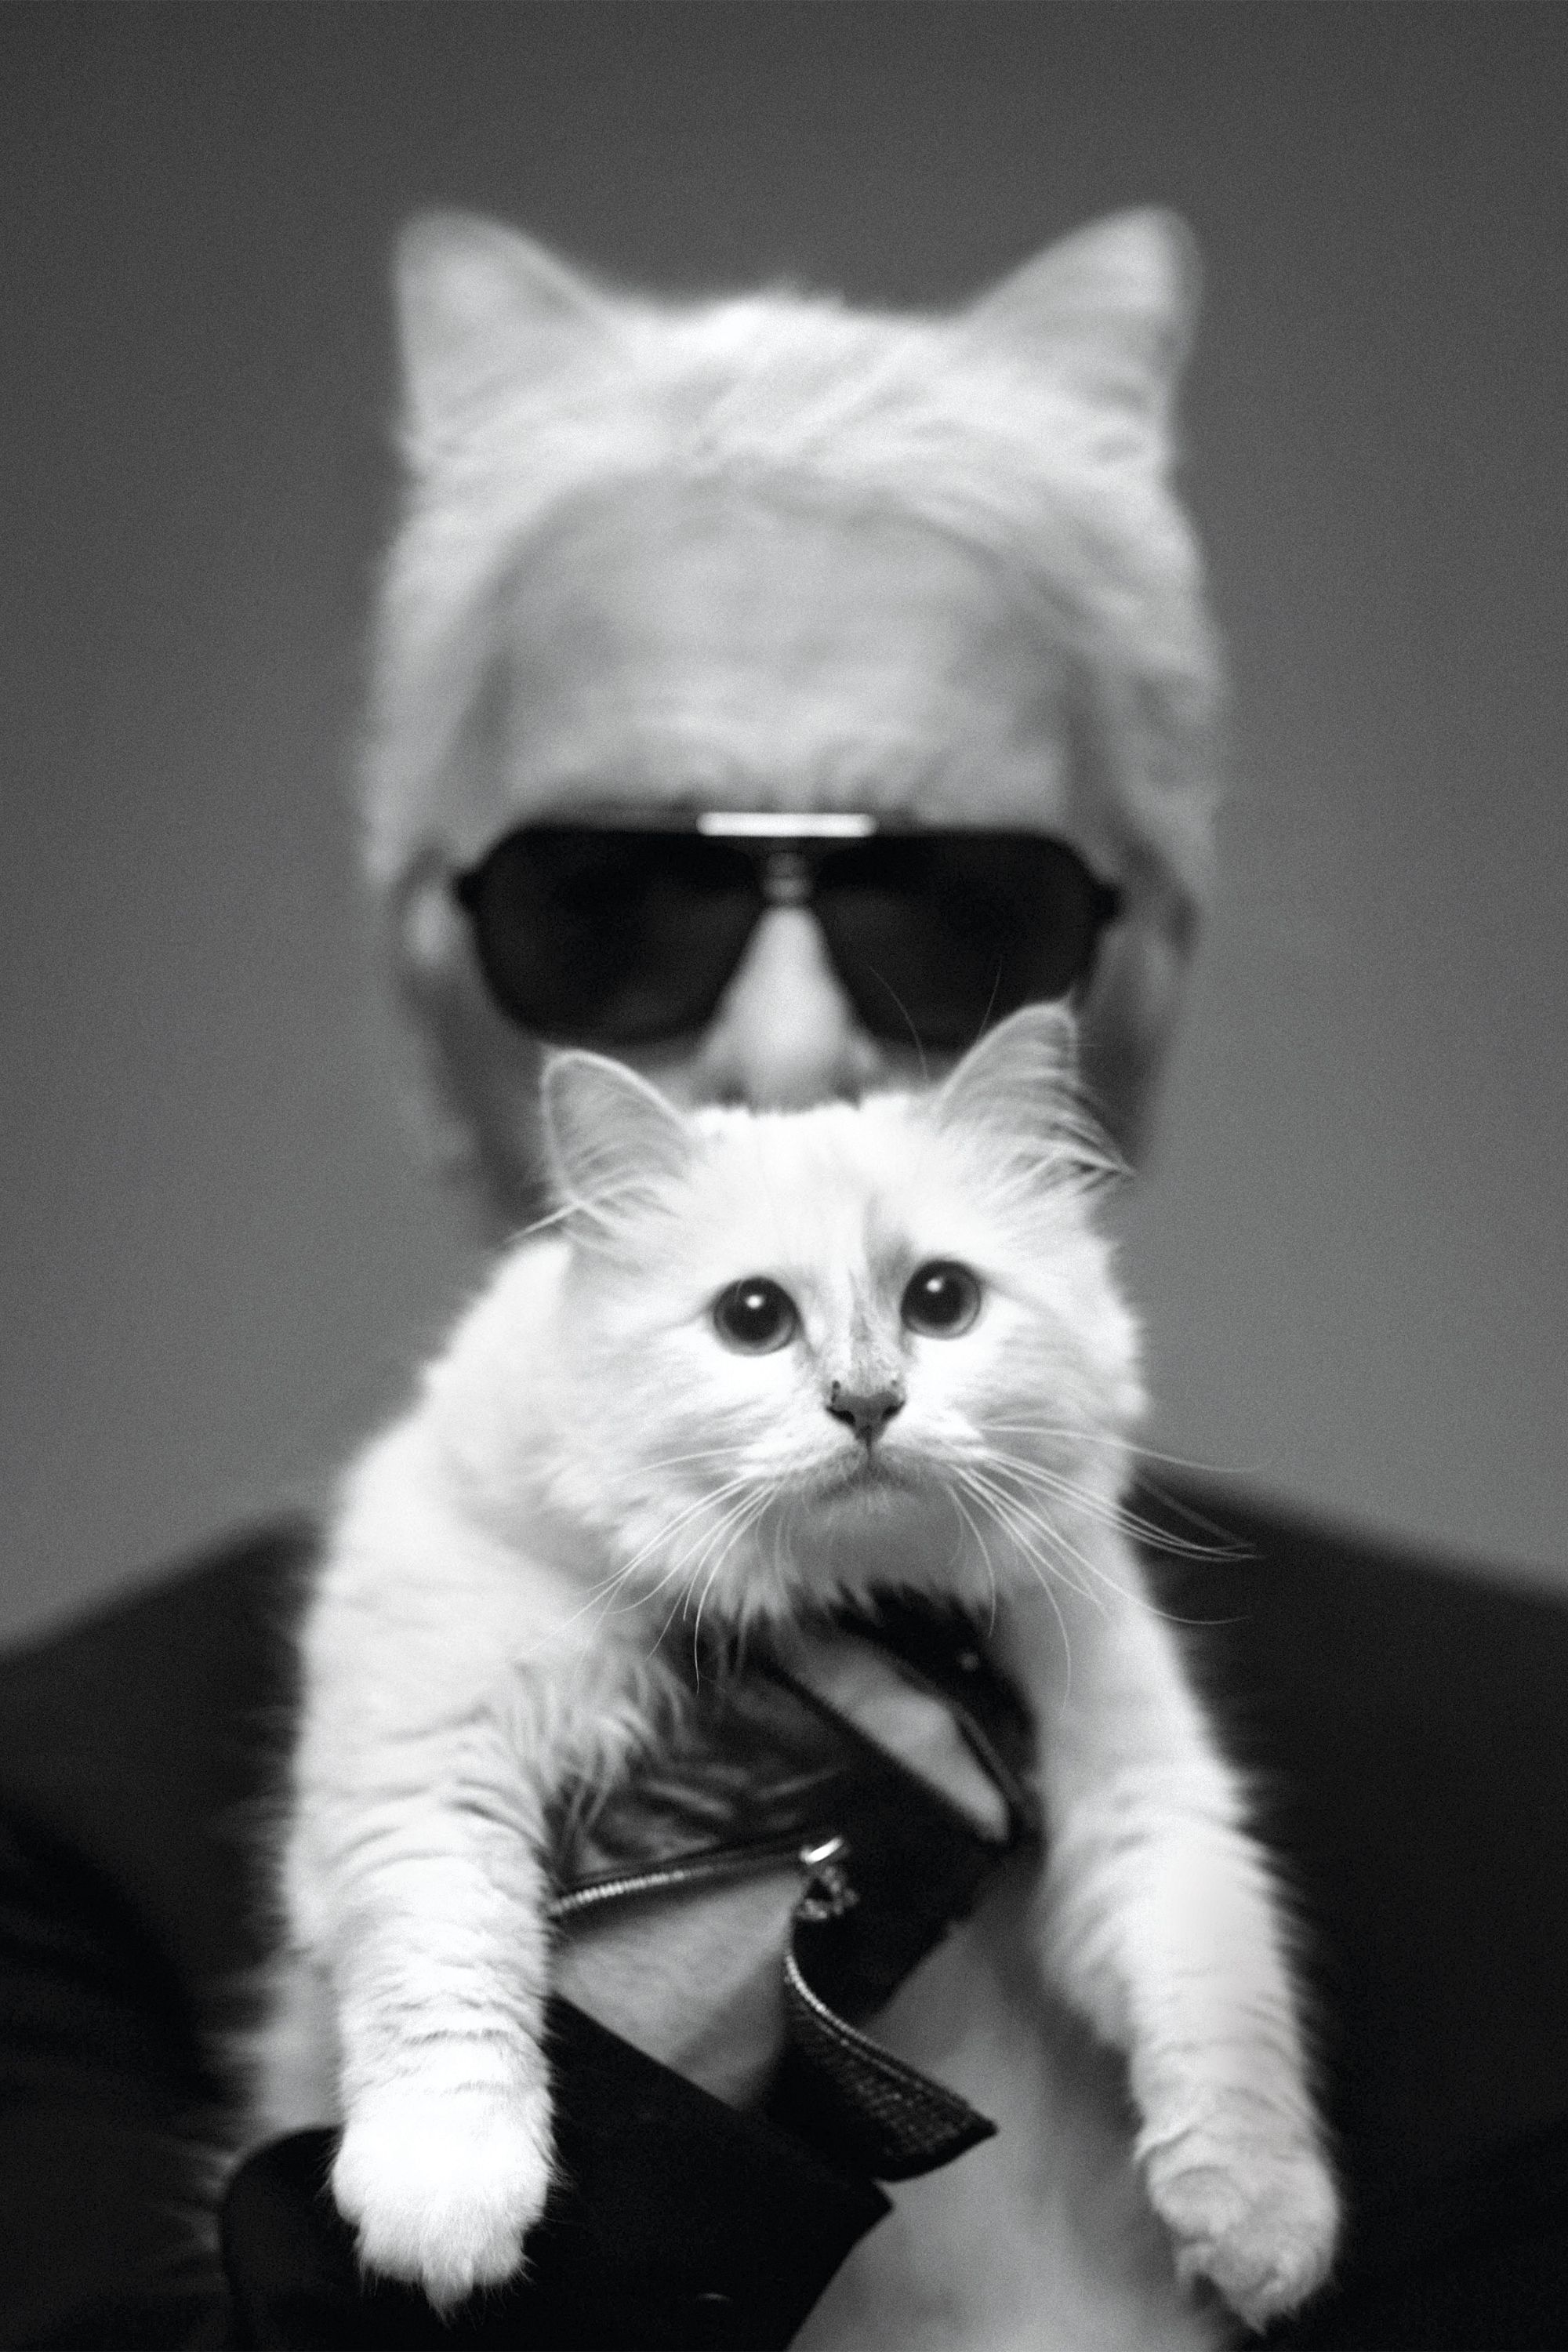 The new face of Chanel, Margot Robbie, compares notes with Karl Lagerfeld on their animal companions.